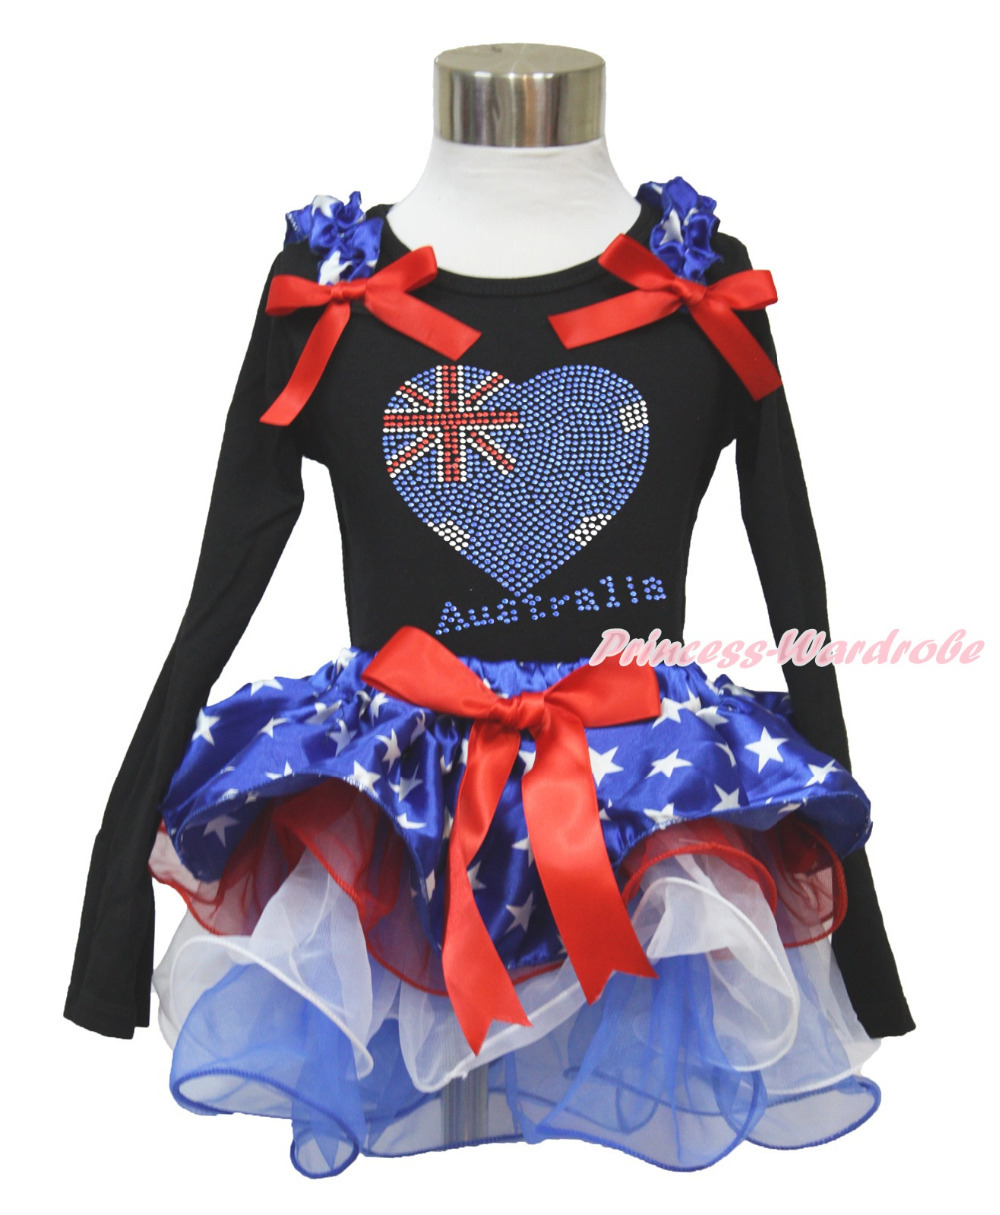 4th July Rhinestone Australia Heart Black L/S Top Patriotic Star Red White Petal Pettiskirt Girl NB-8Year MAMH232(Hong Kong)